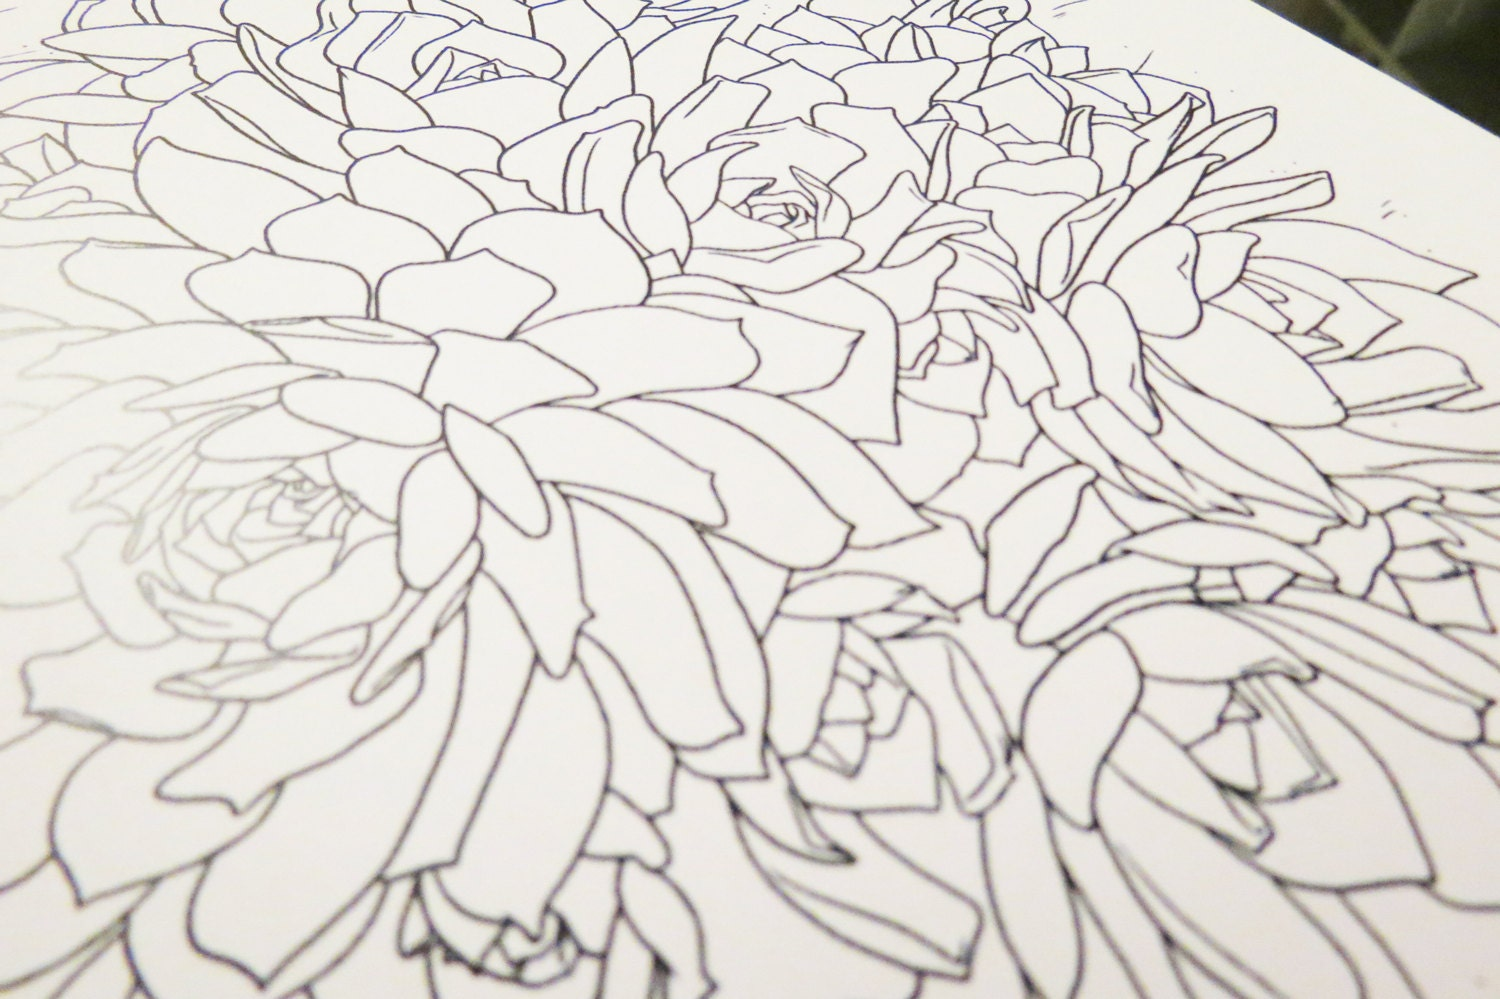 The botany coloring book pdf - Gallery Photo Gallery Photo Gallery Photo